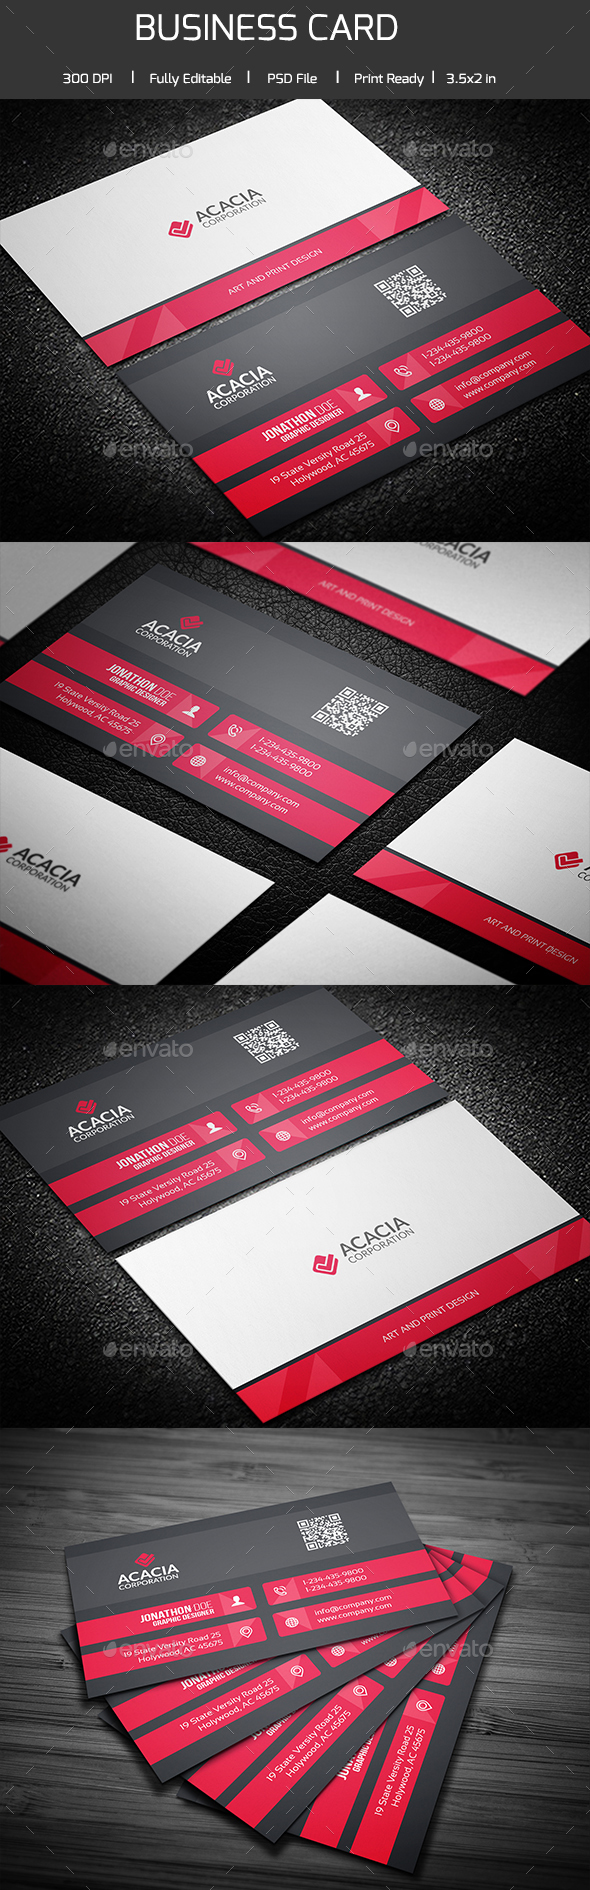 Bashonti Business Card - Corporate Business Cards